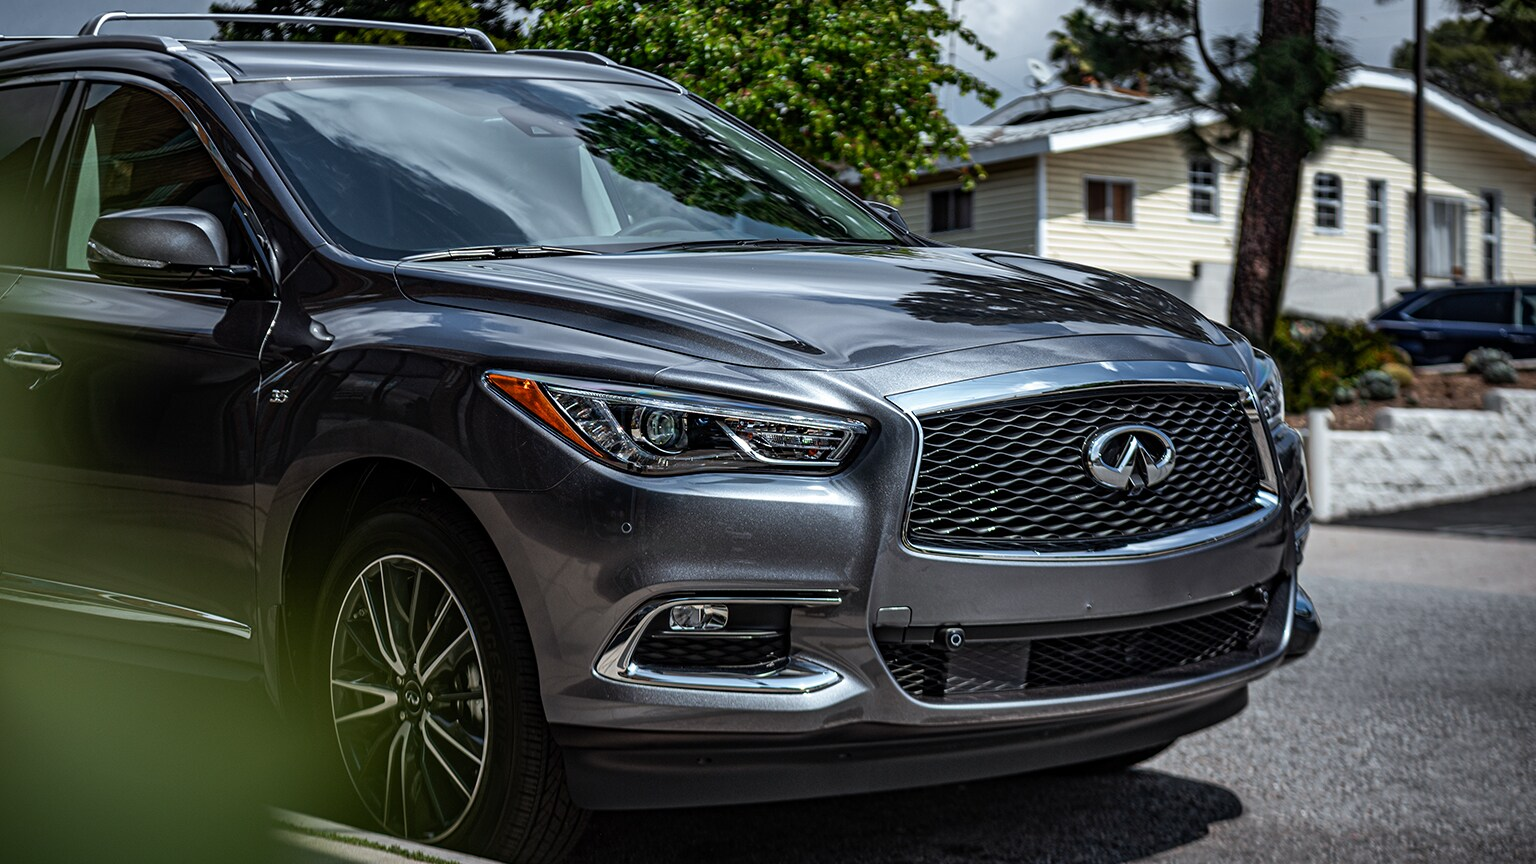 How much can the 2020 INFINITI QX60 tow?